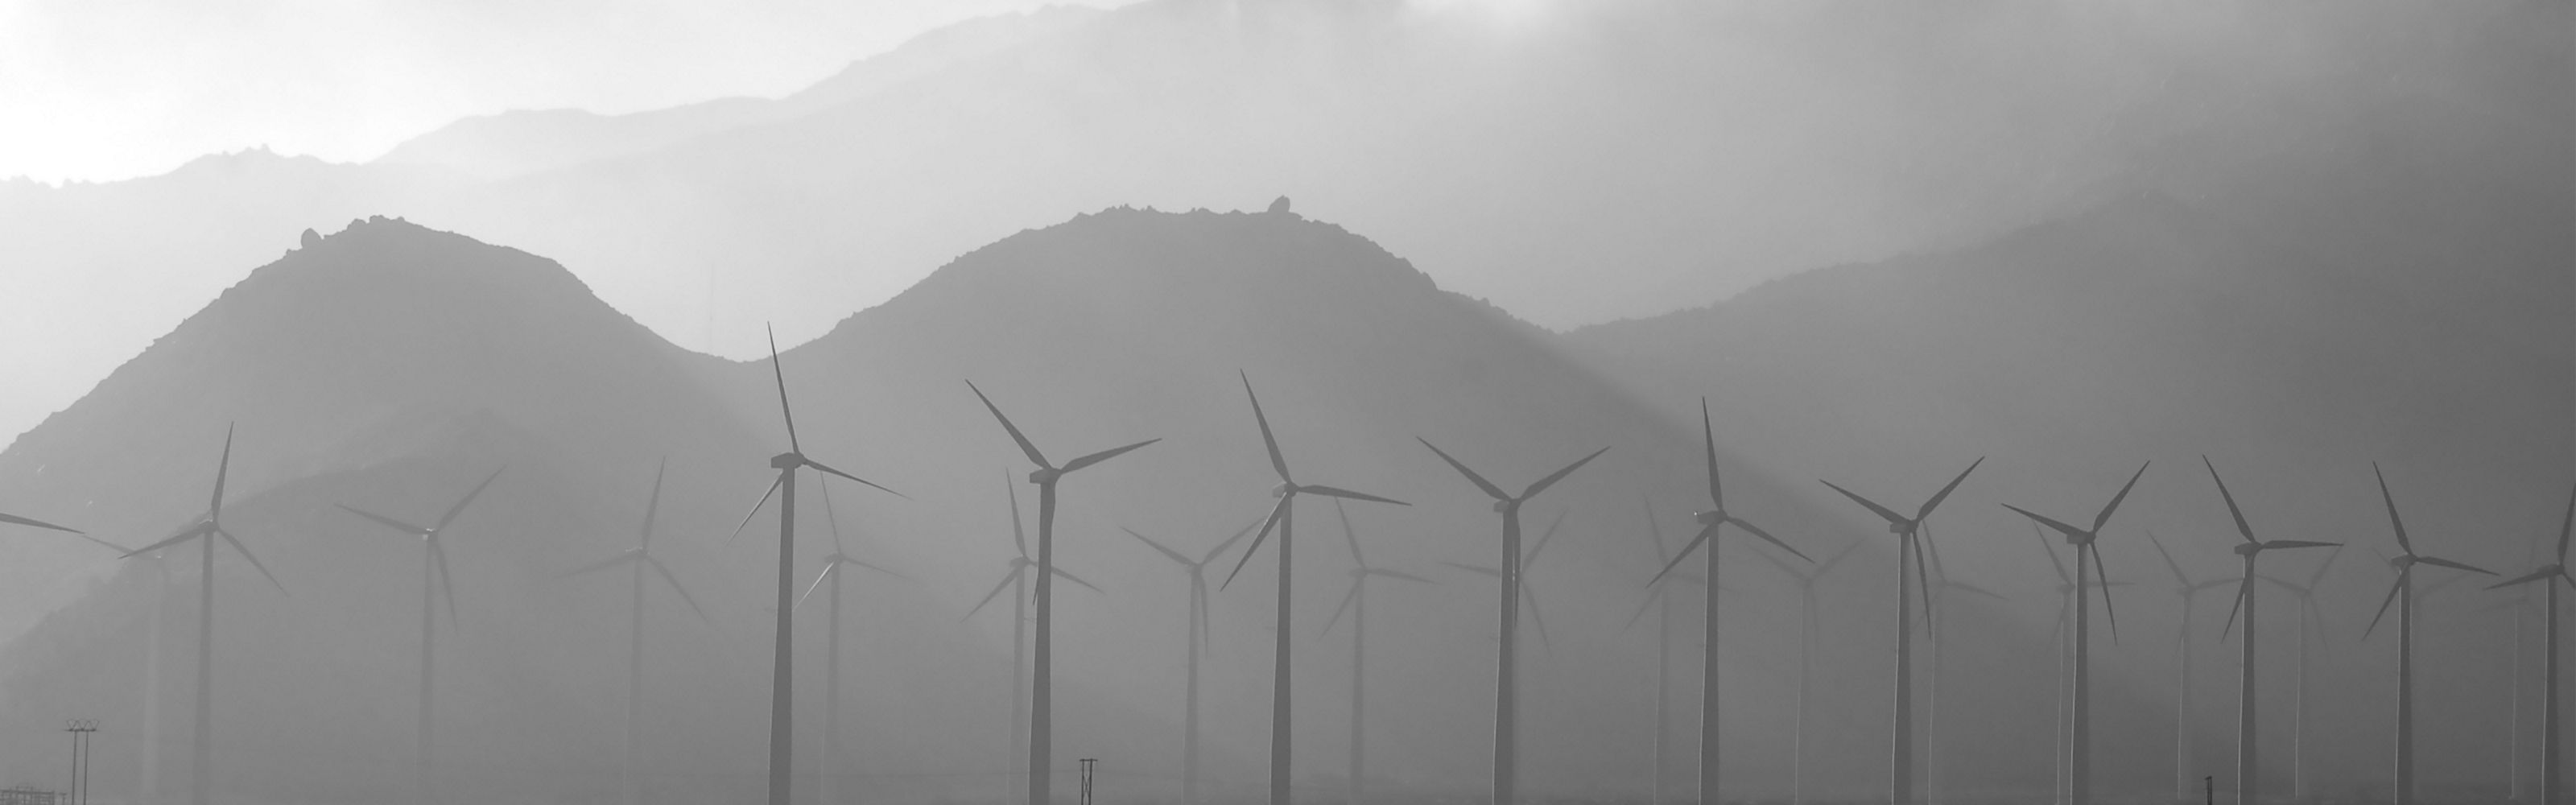 Wind turbines against a mountain backdrop